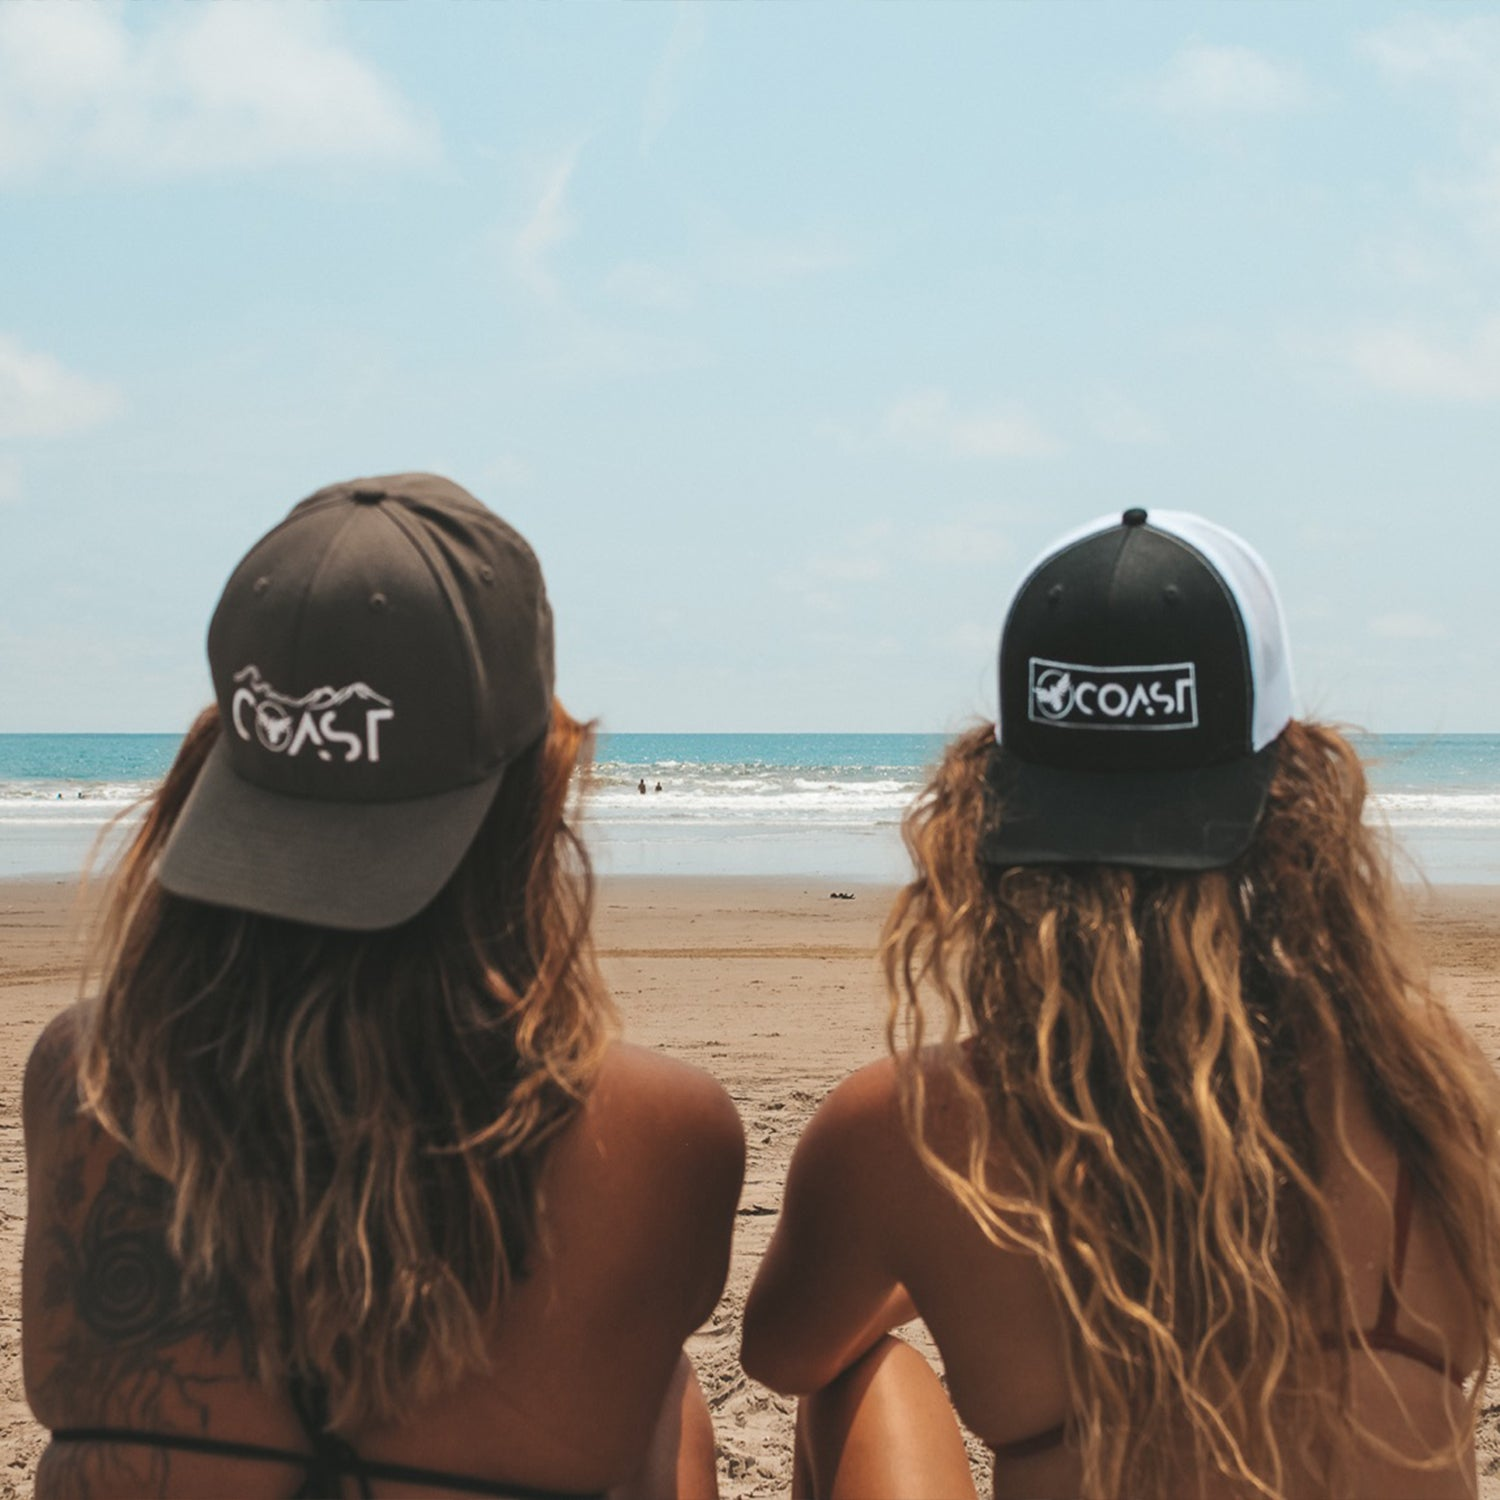 Find Your Coast Ocean Surf Hats